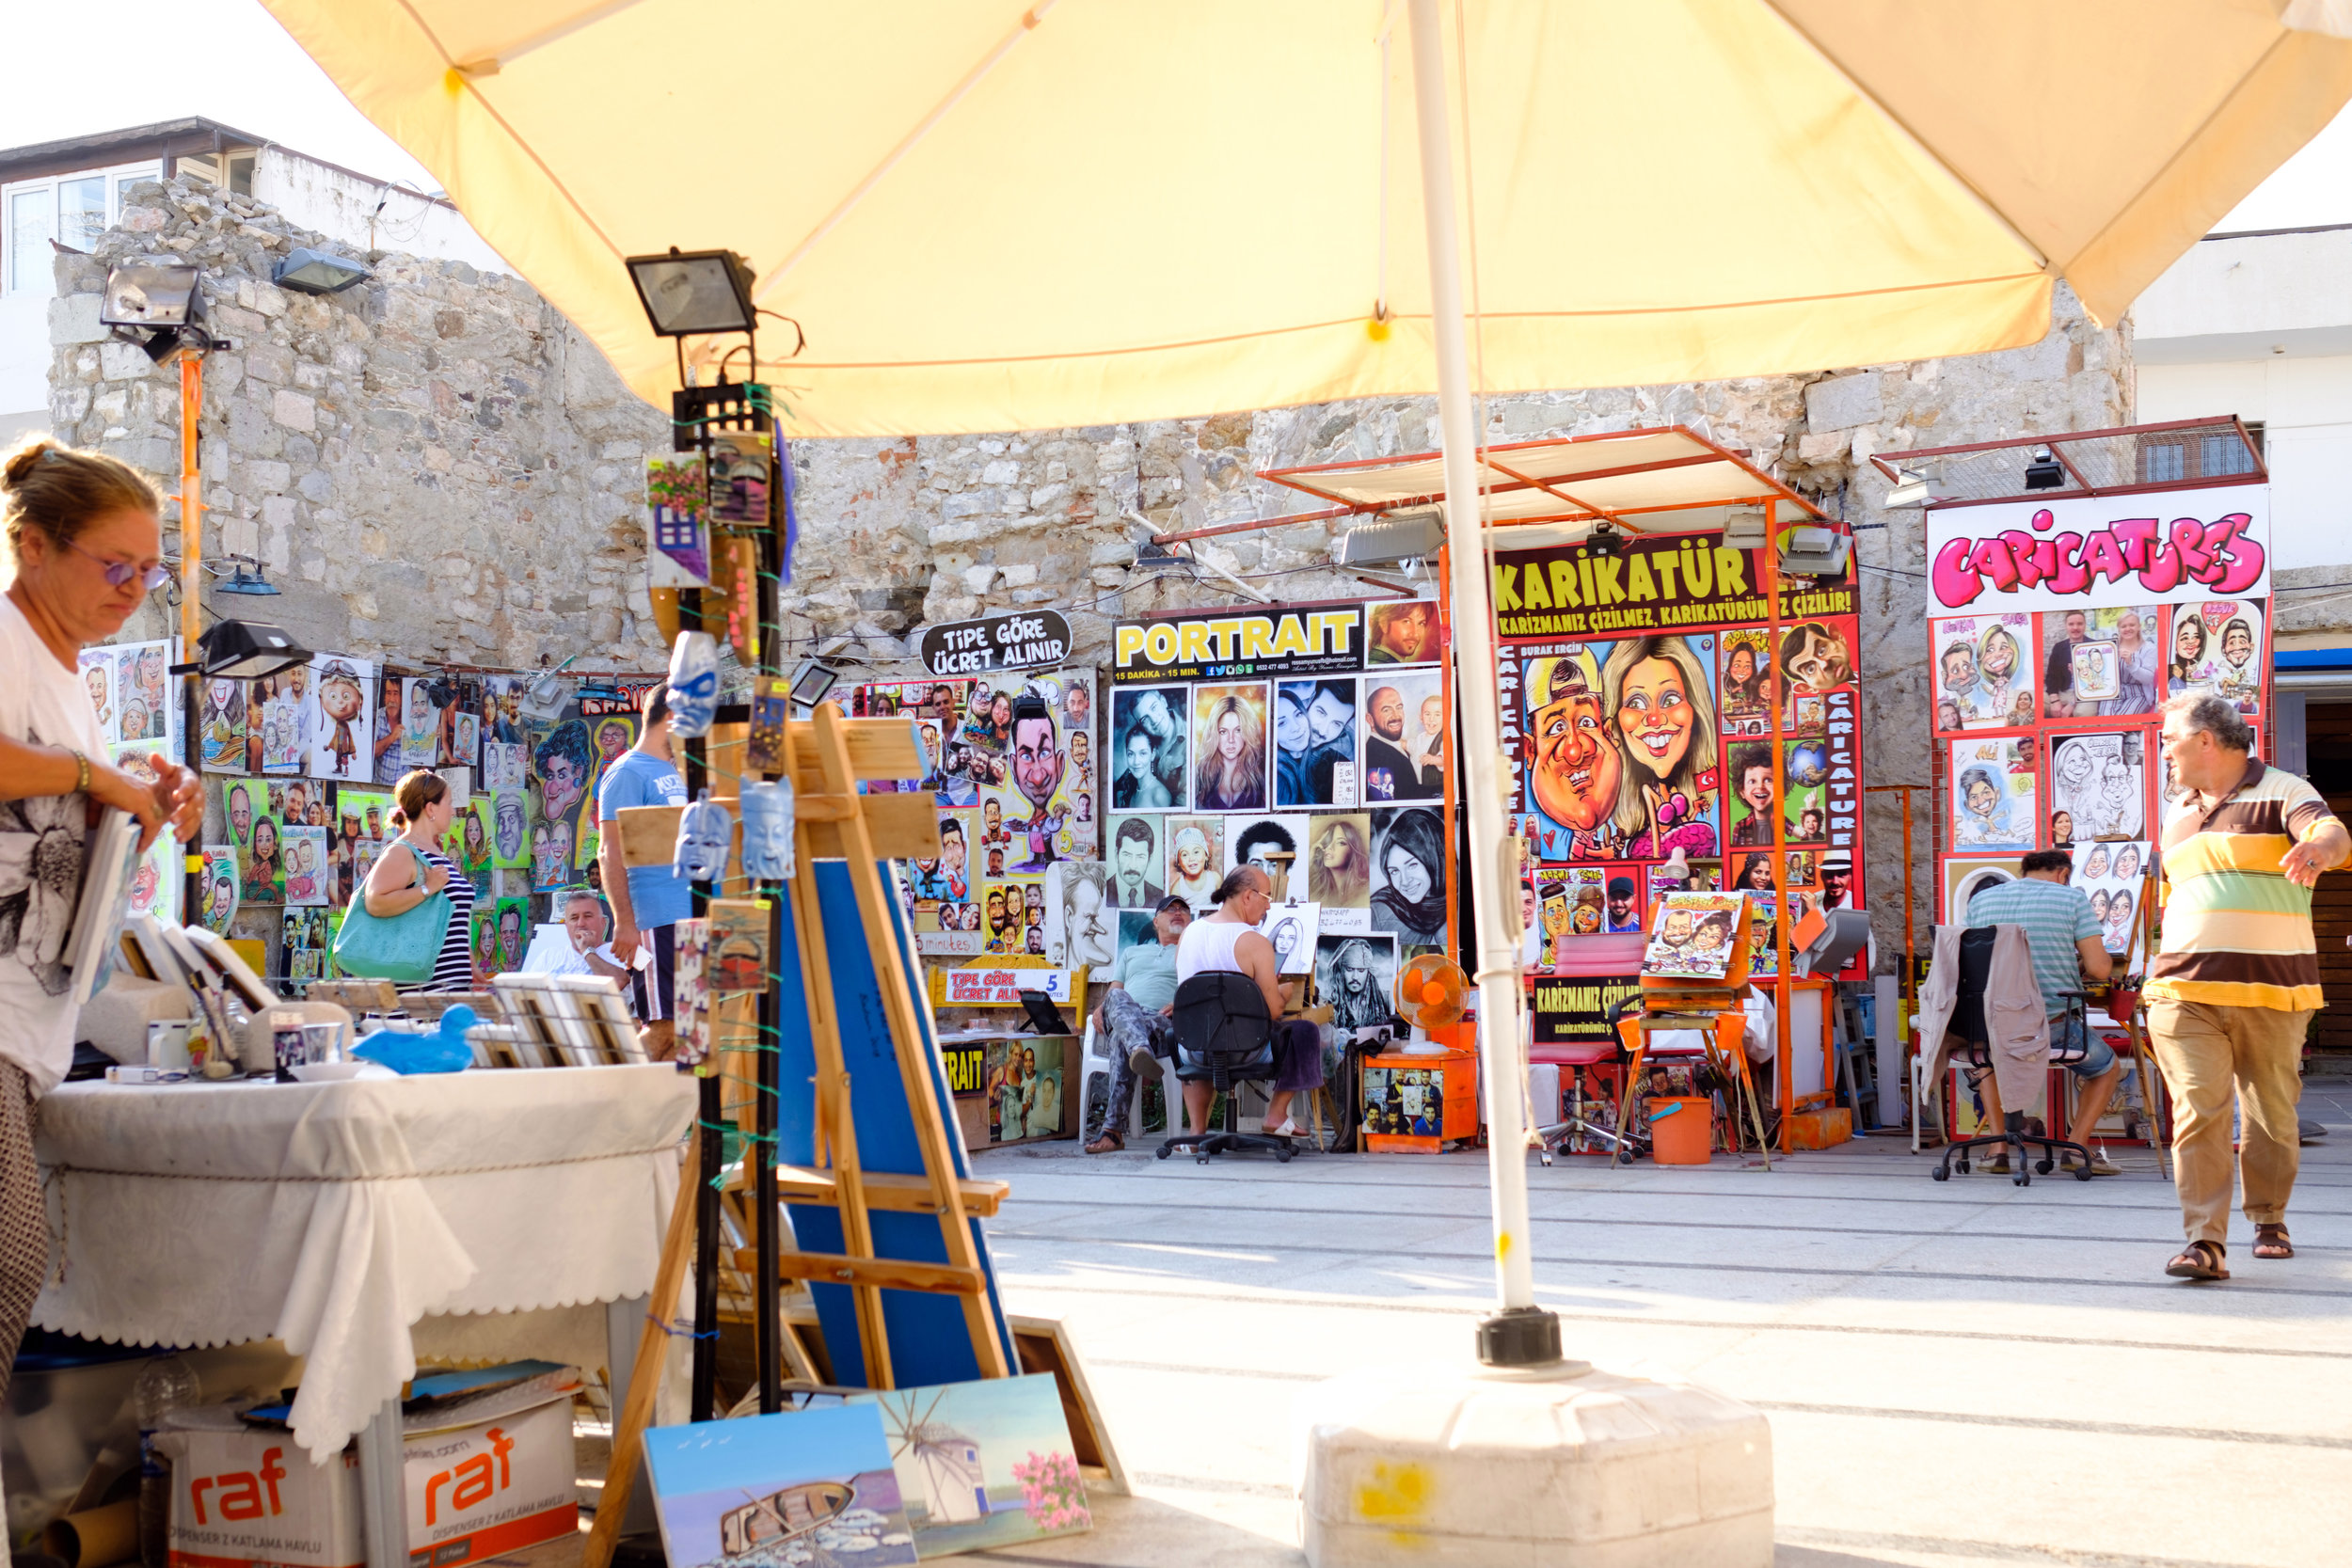 A colourful arts and craft market in Bodrum Turkey